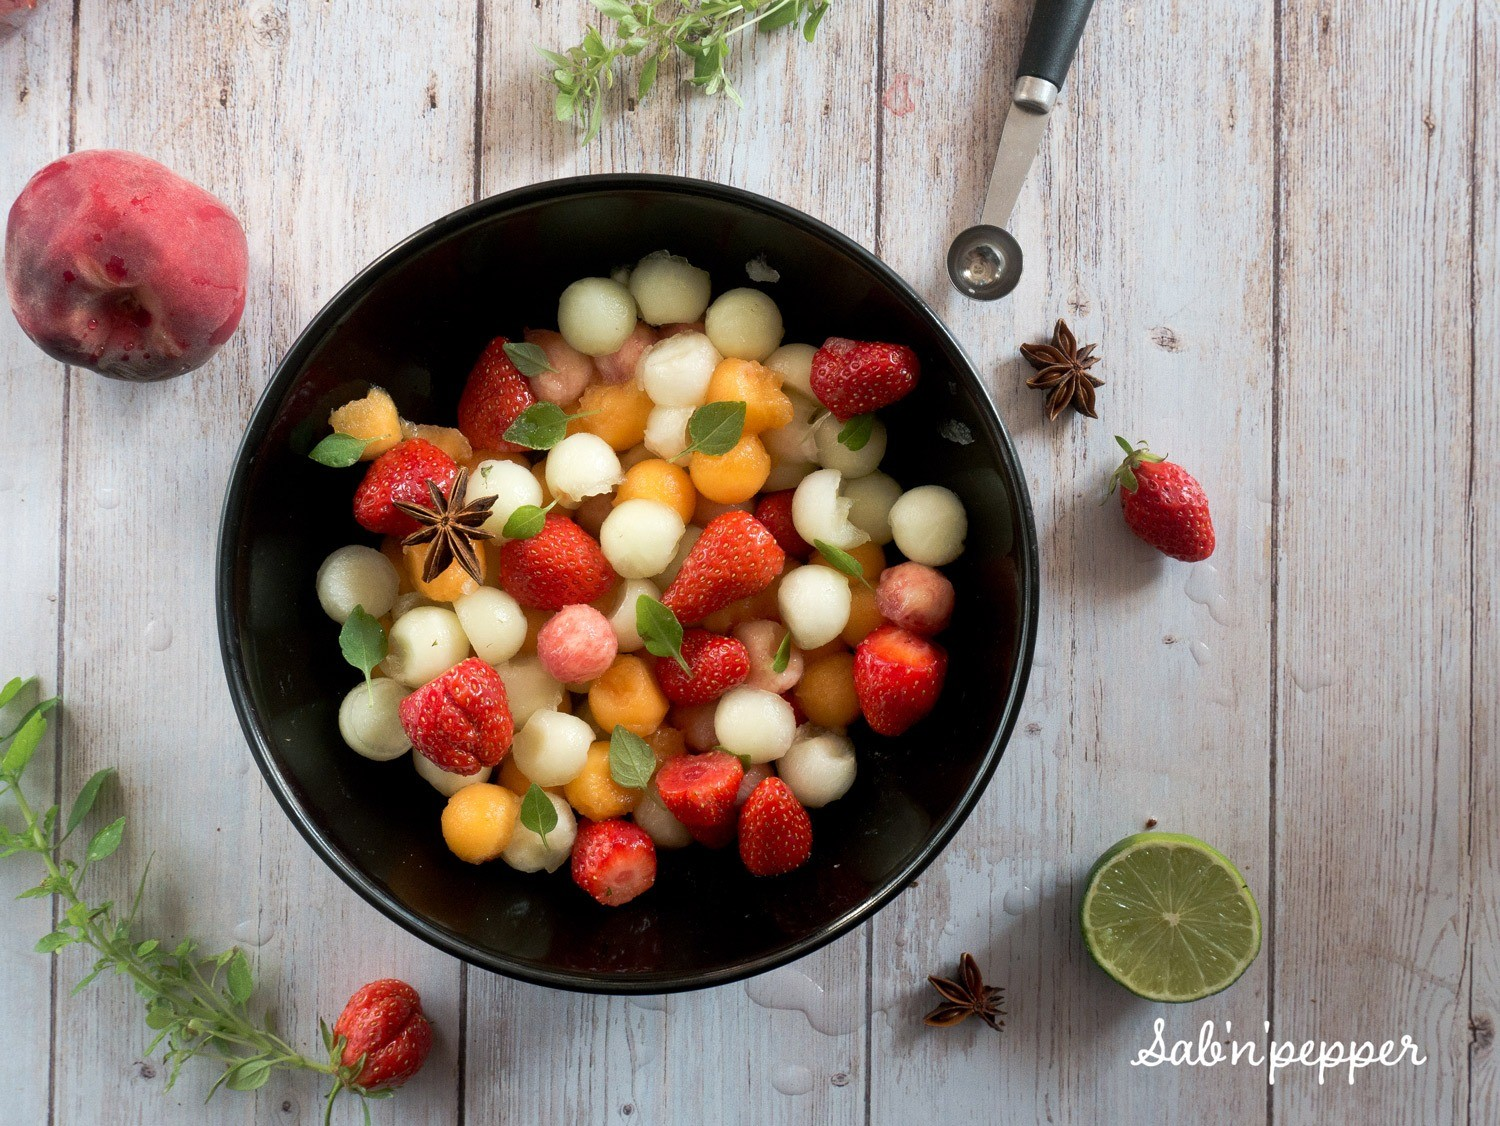 Une salade de fruits simple et parfumée à la badiane